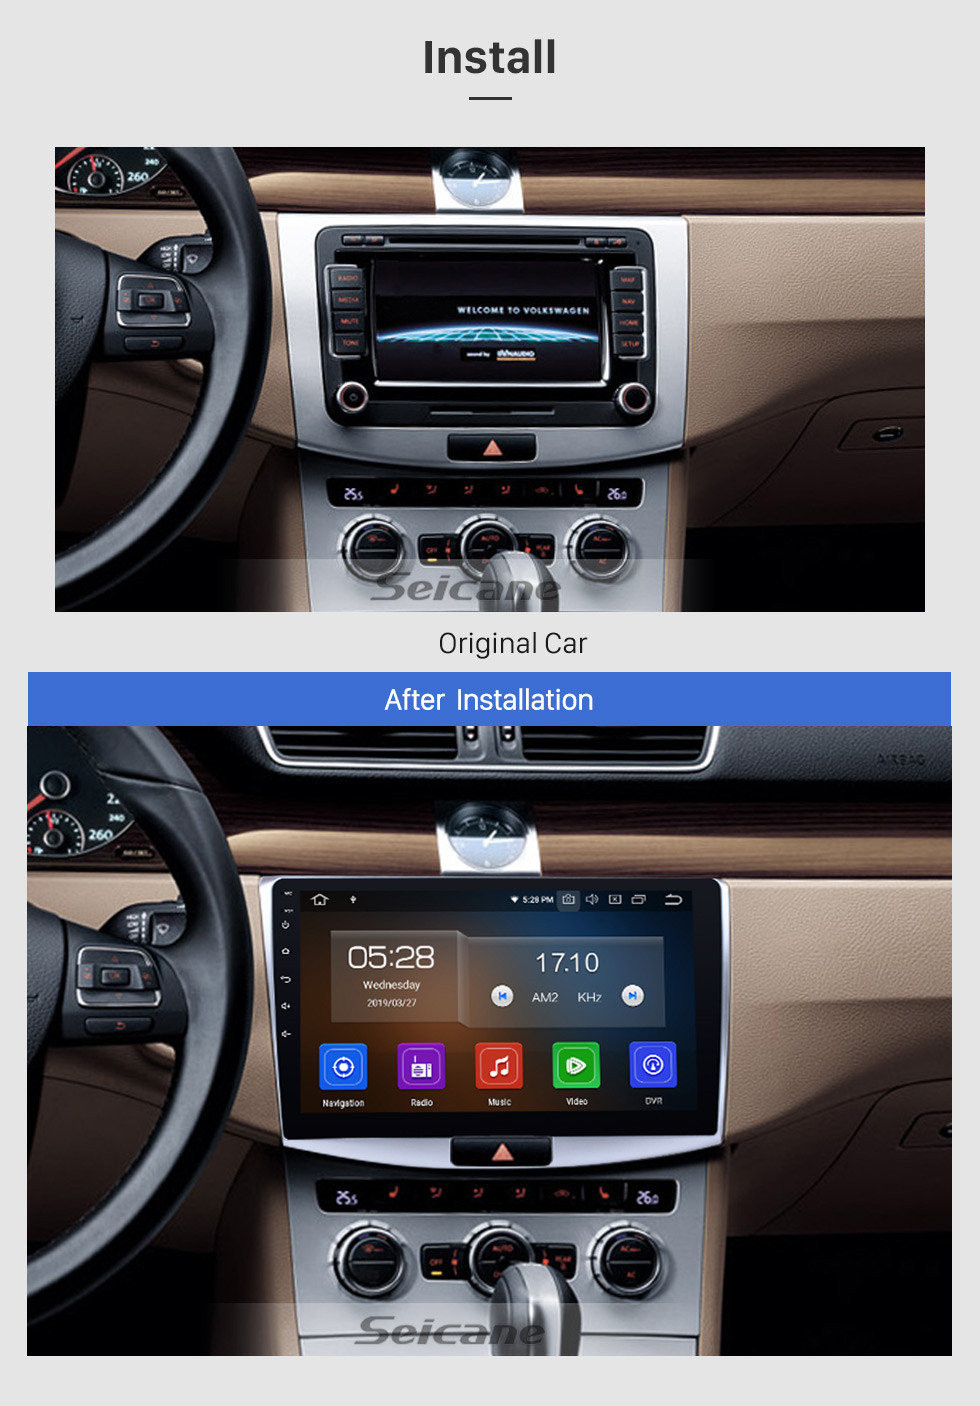 Seicane 10.1 inch 1024*600 touchscreen 2012 2013 2014 VW Volkswagen Magotan Radio Removal with Android 10.0 in Dash GPS Bluetooth Car Audio System 3G WiFi CD DVD Player OBD2 Mirror Link Steering Wheel Control